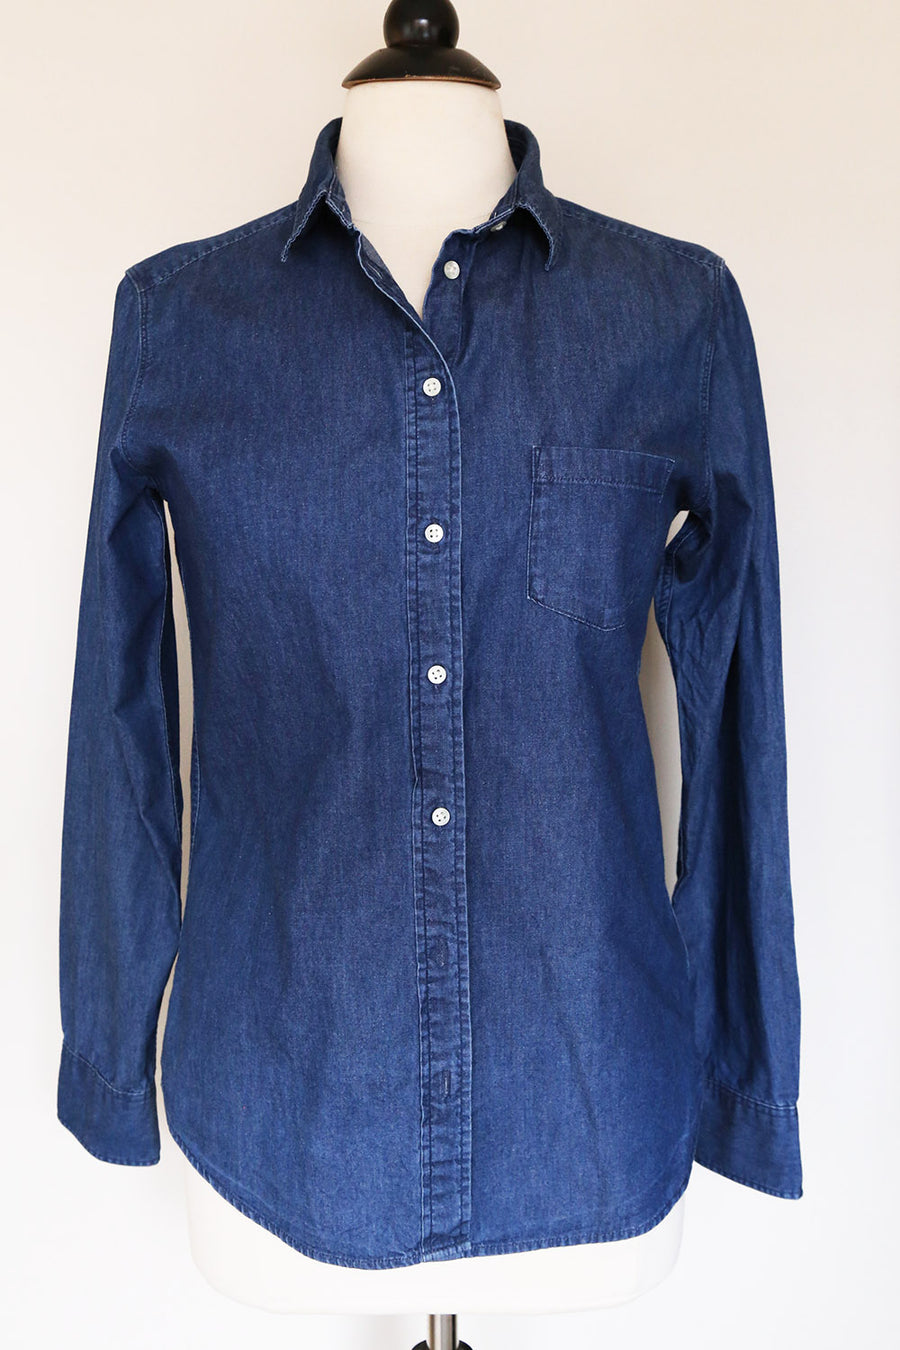 PRELOVED - 'UNIQLO' Button Up Denim Shirt